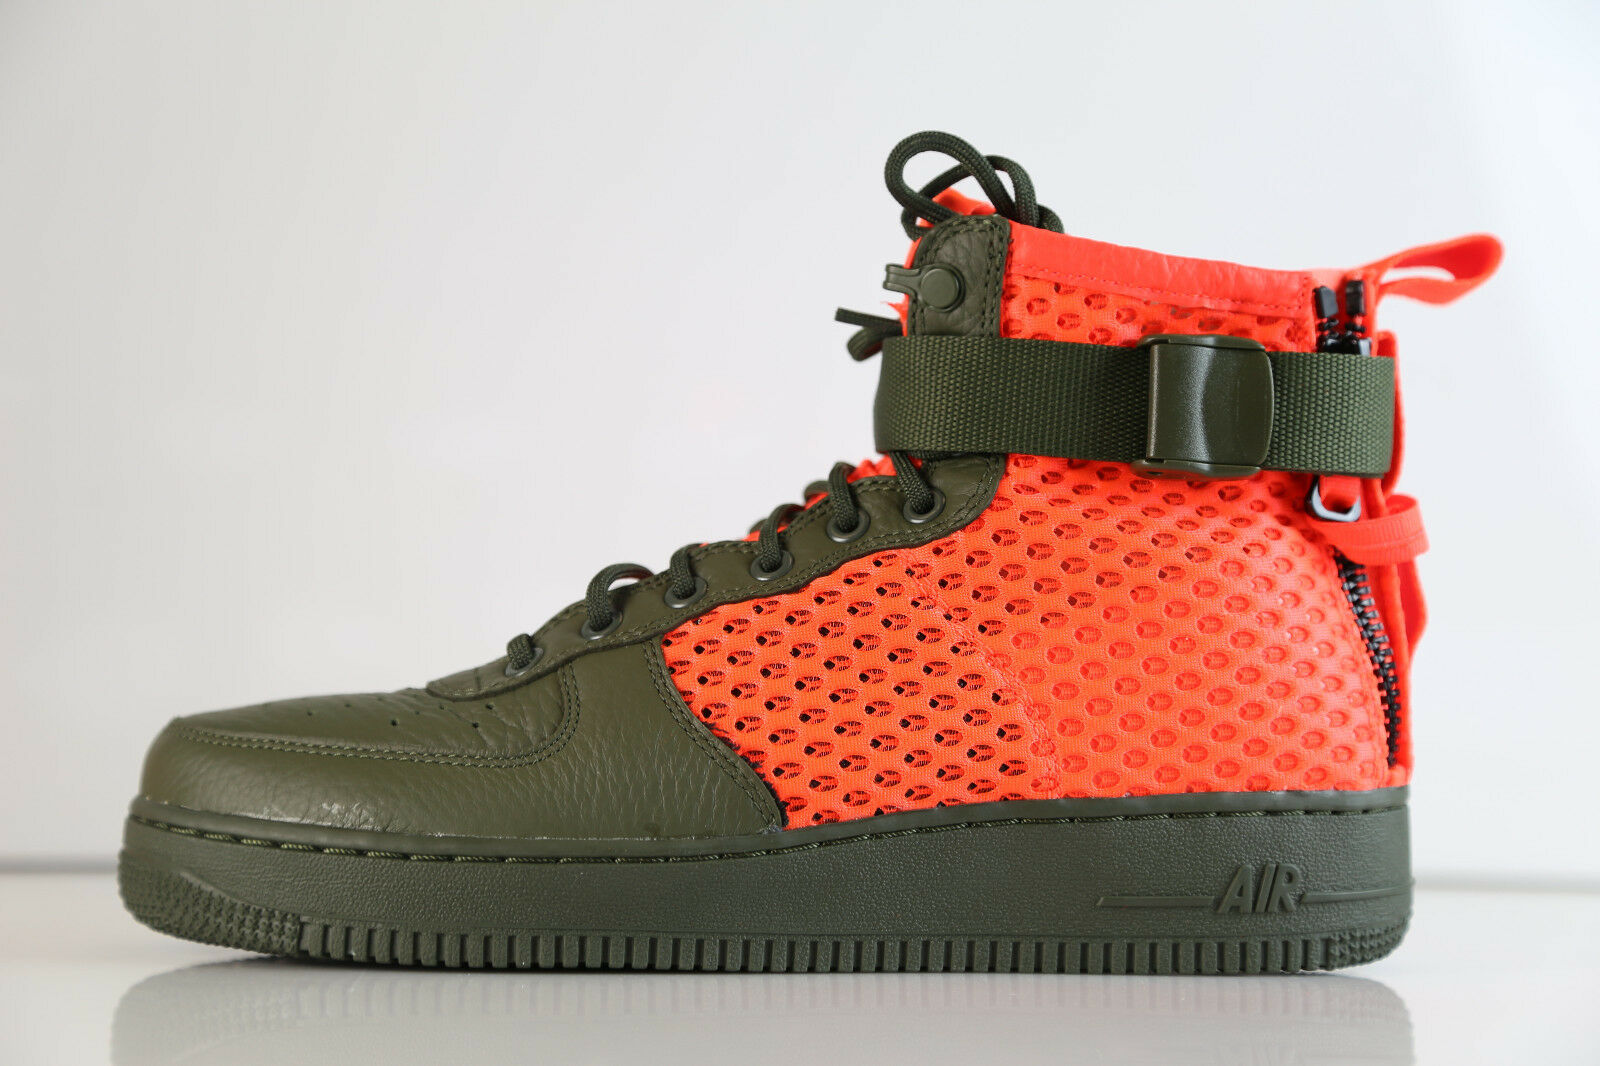 Nike Air Force SF AF1 Mid Mesh QS Cargo Khaki Olive Orange AA7345-300 8-13 1